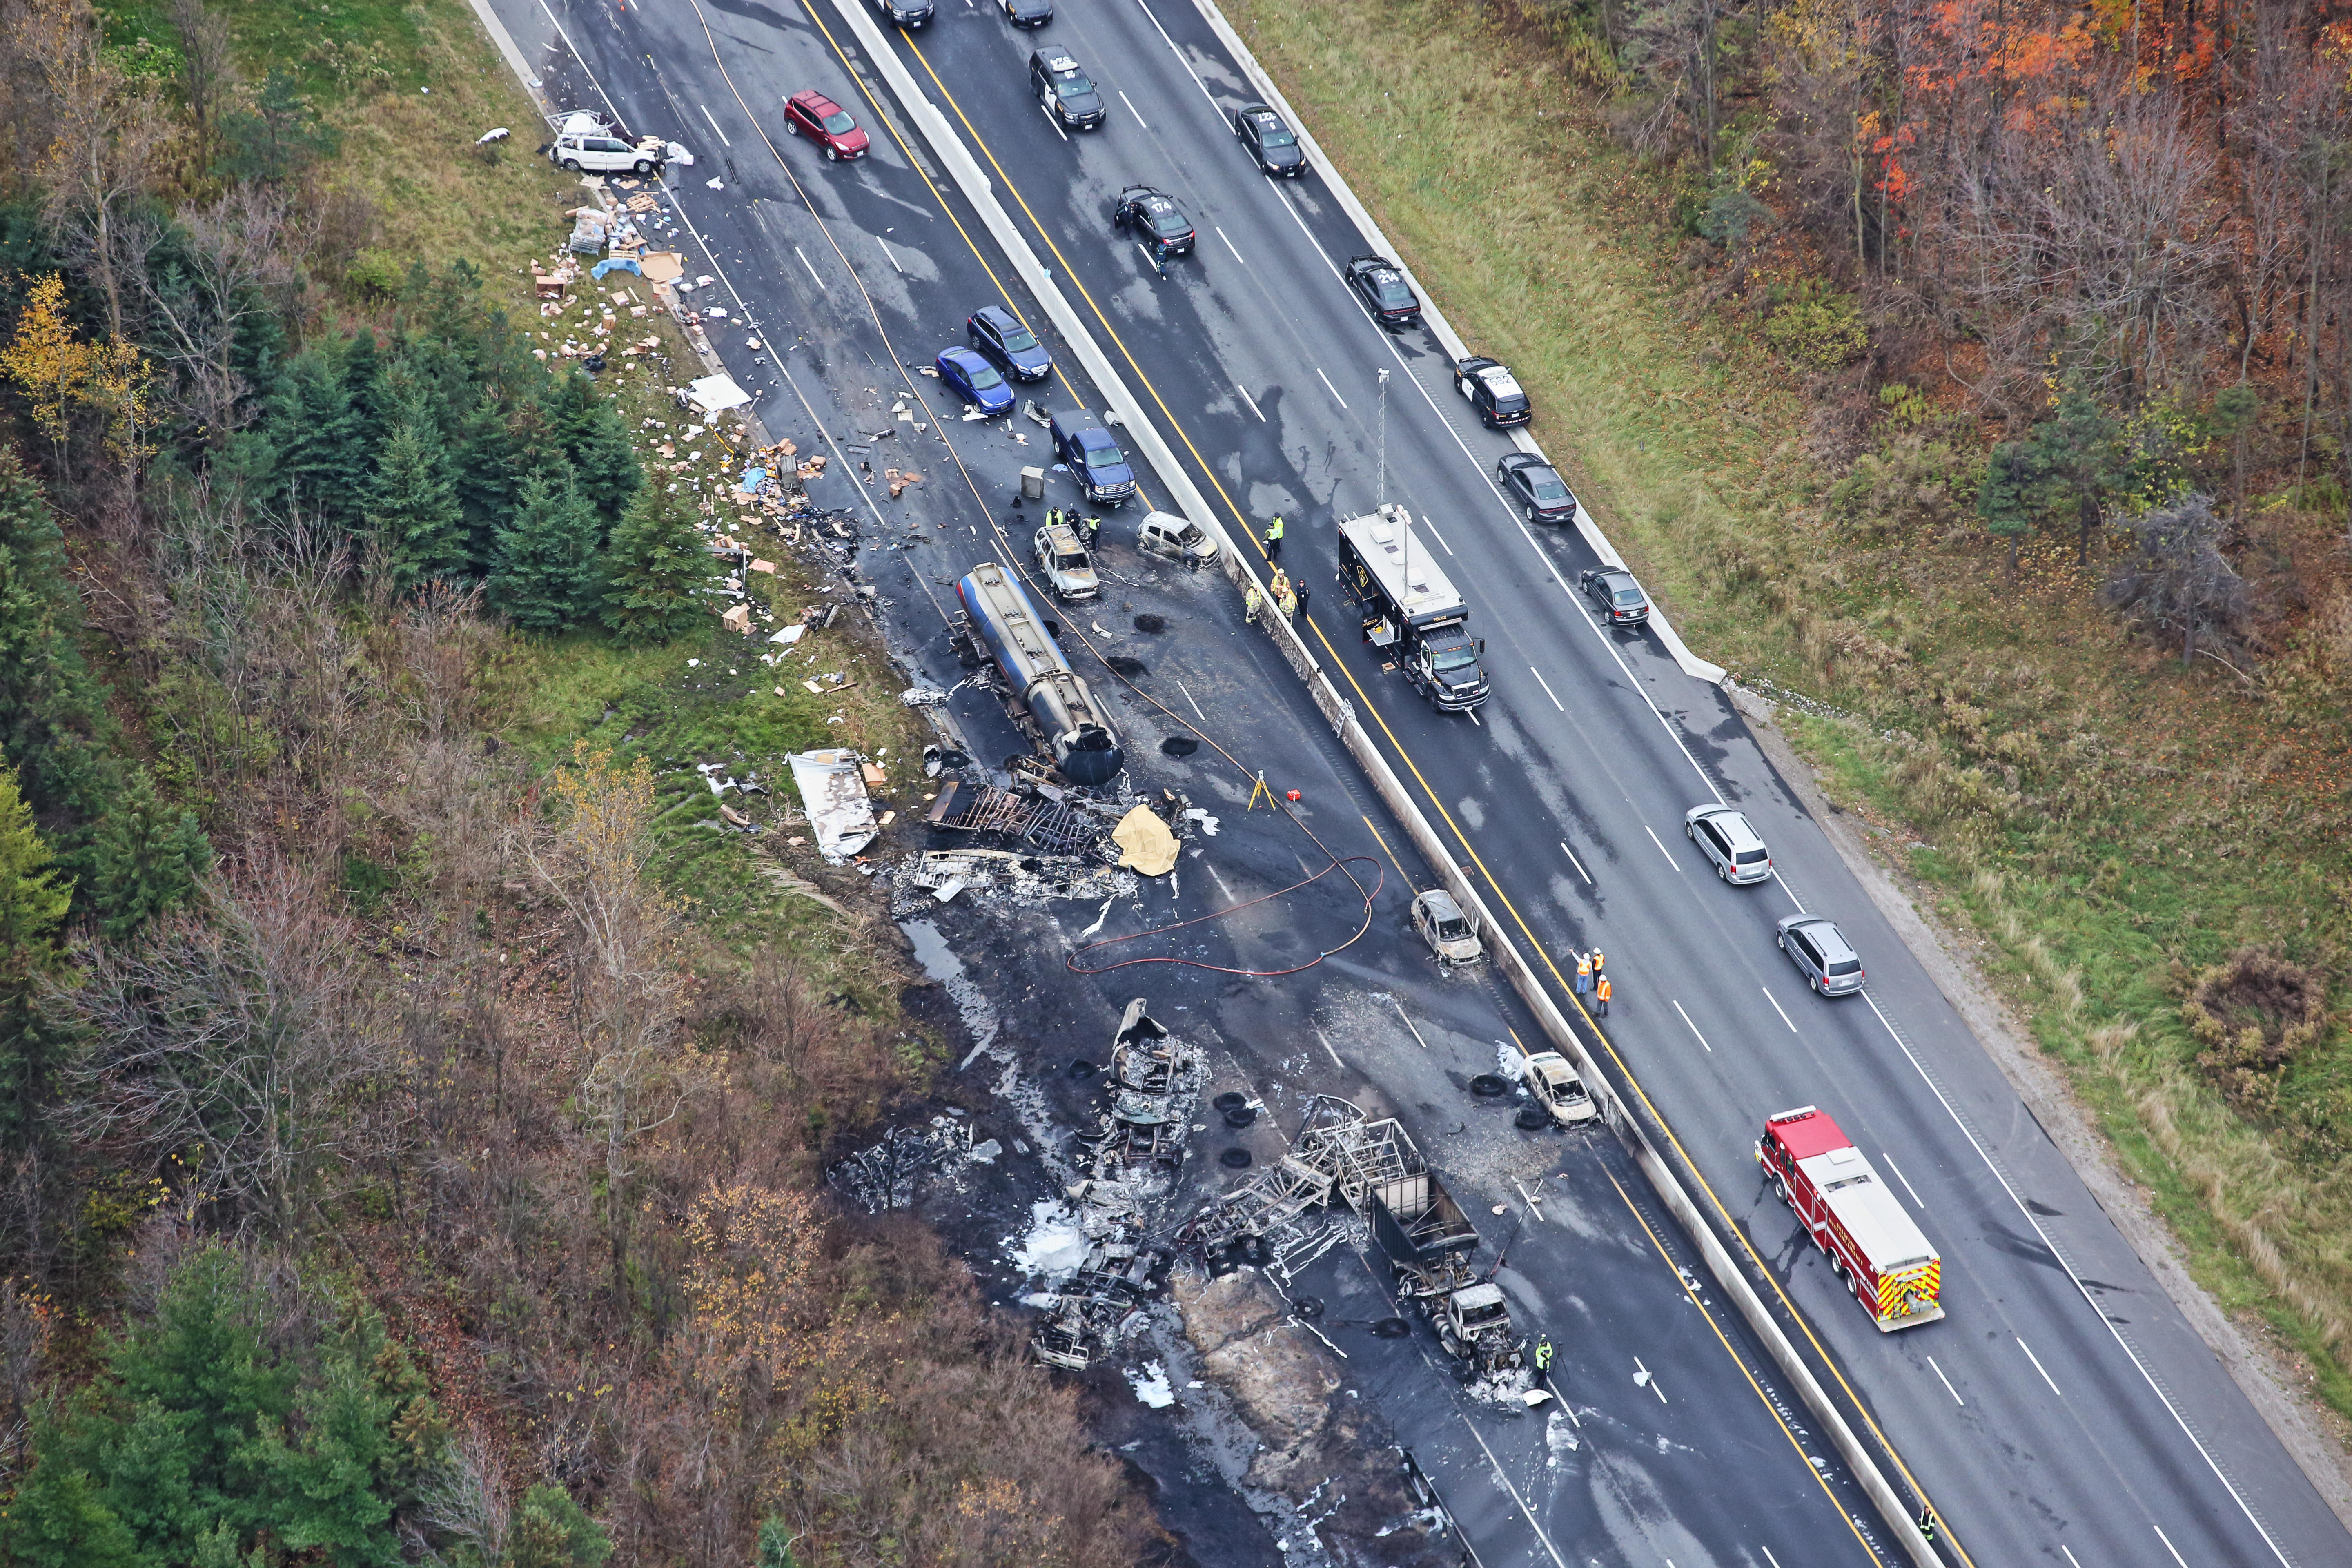 Father of 9 believed to be among 3 killed in fiery crash on